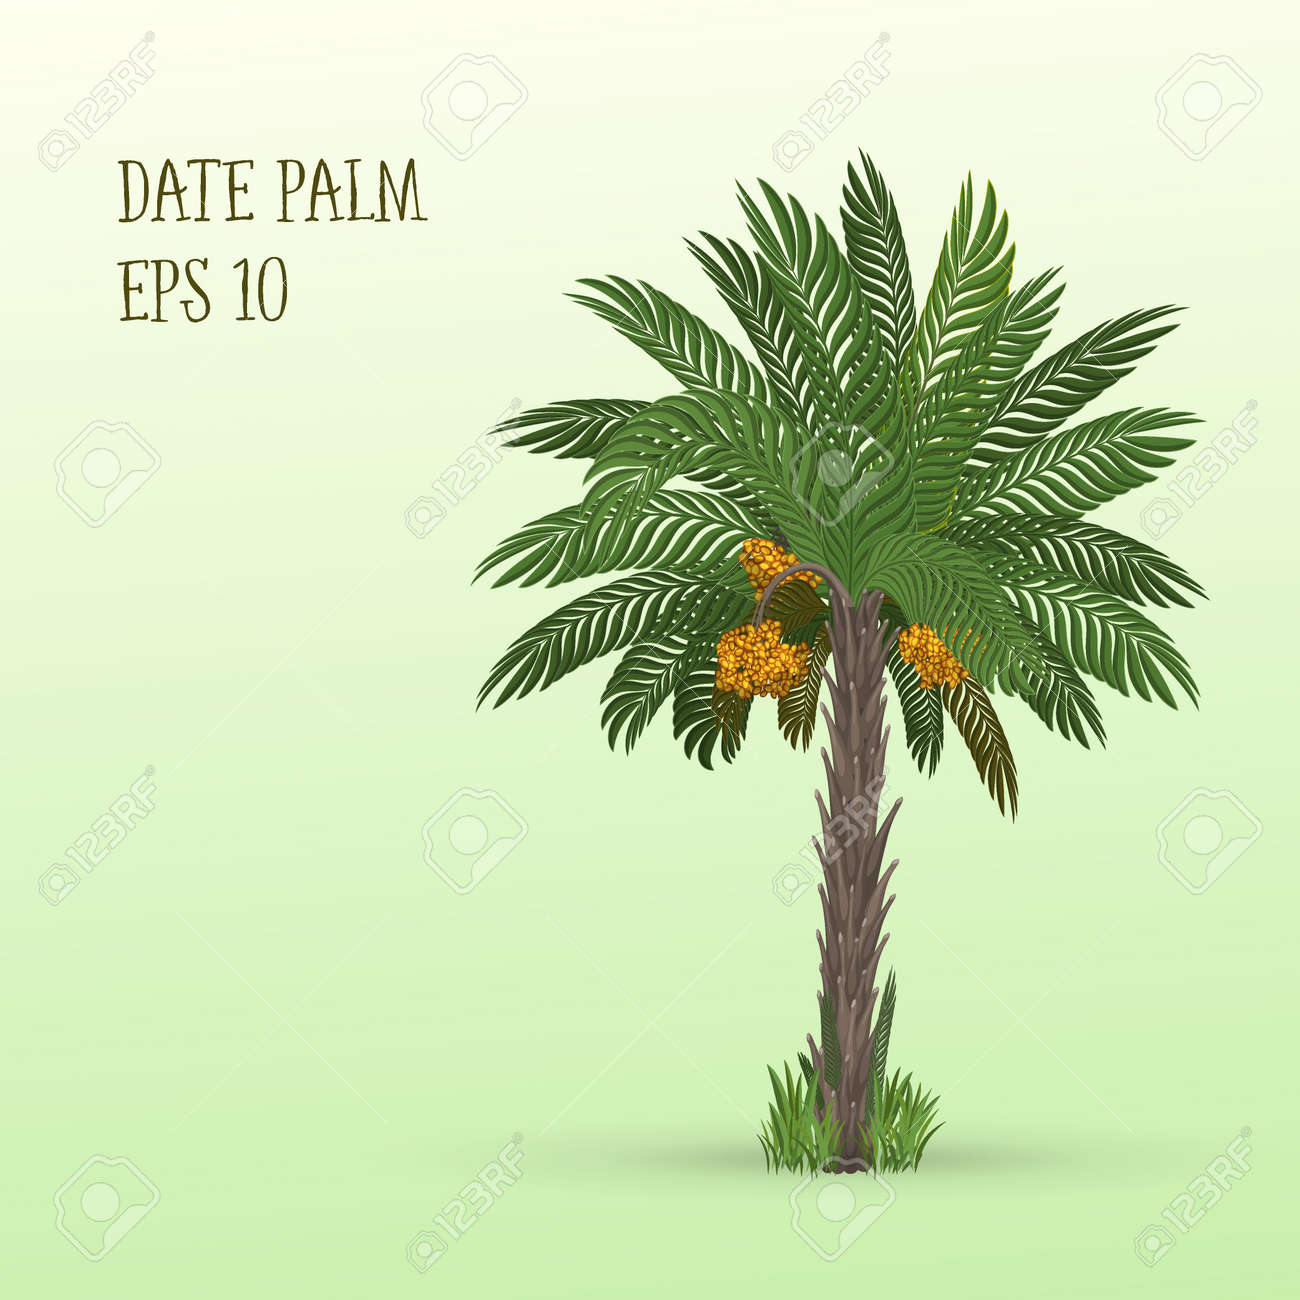 Vector Illustration Of Date Palm Tree With Ripe Fruits Dates